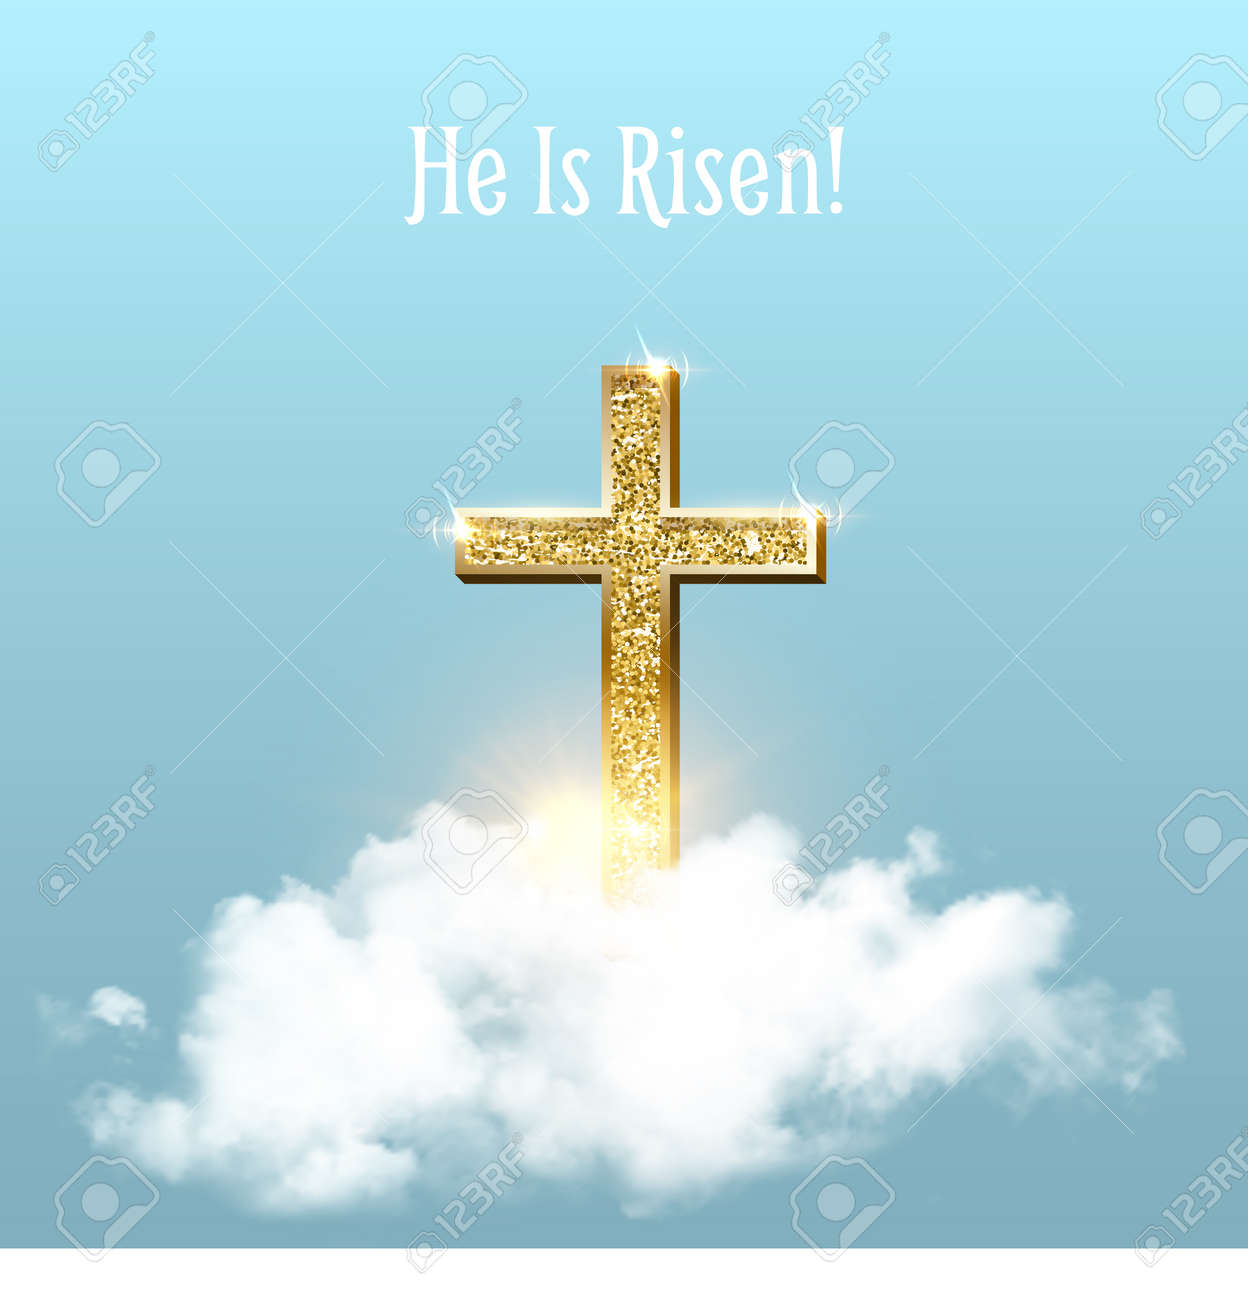 Church cross in heaven sky on Easter background. Christian golden crucifix symbol with clouds and sunbeams vector illustration. Sun shining, religious holiday celebration card with text - 166461059